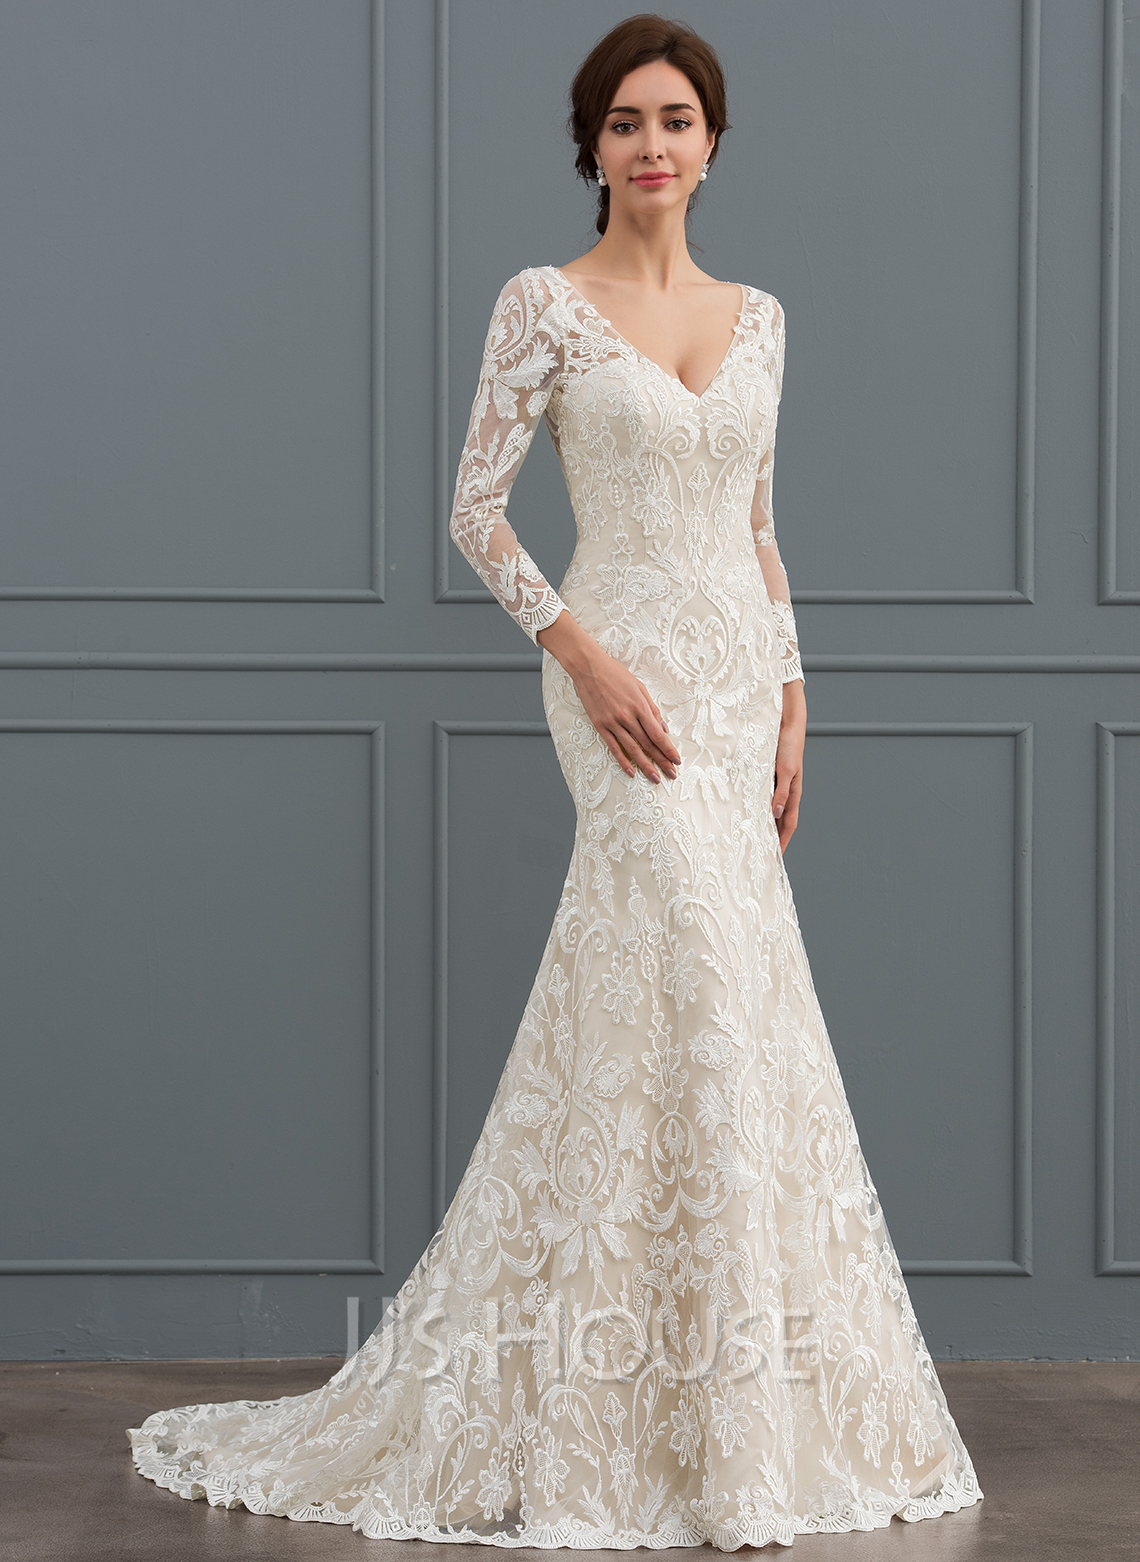 Lace Wedding Dress With Sleeves.Trumpet Mermaid V Neck Sweep Train Lace Wedding Dress 002127261